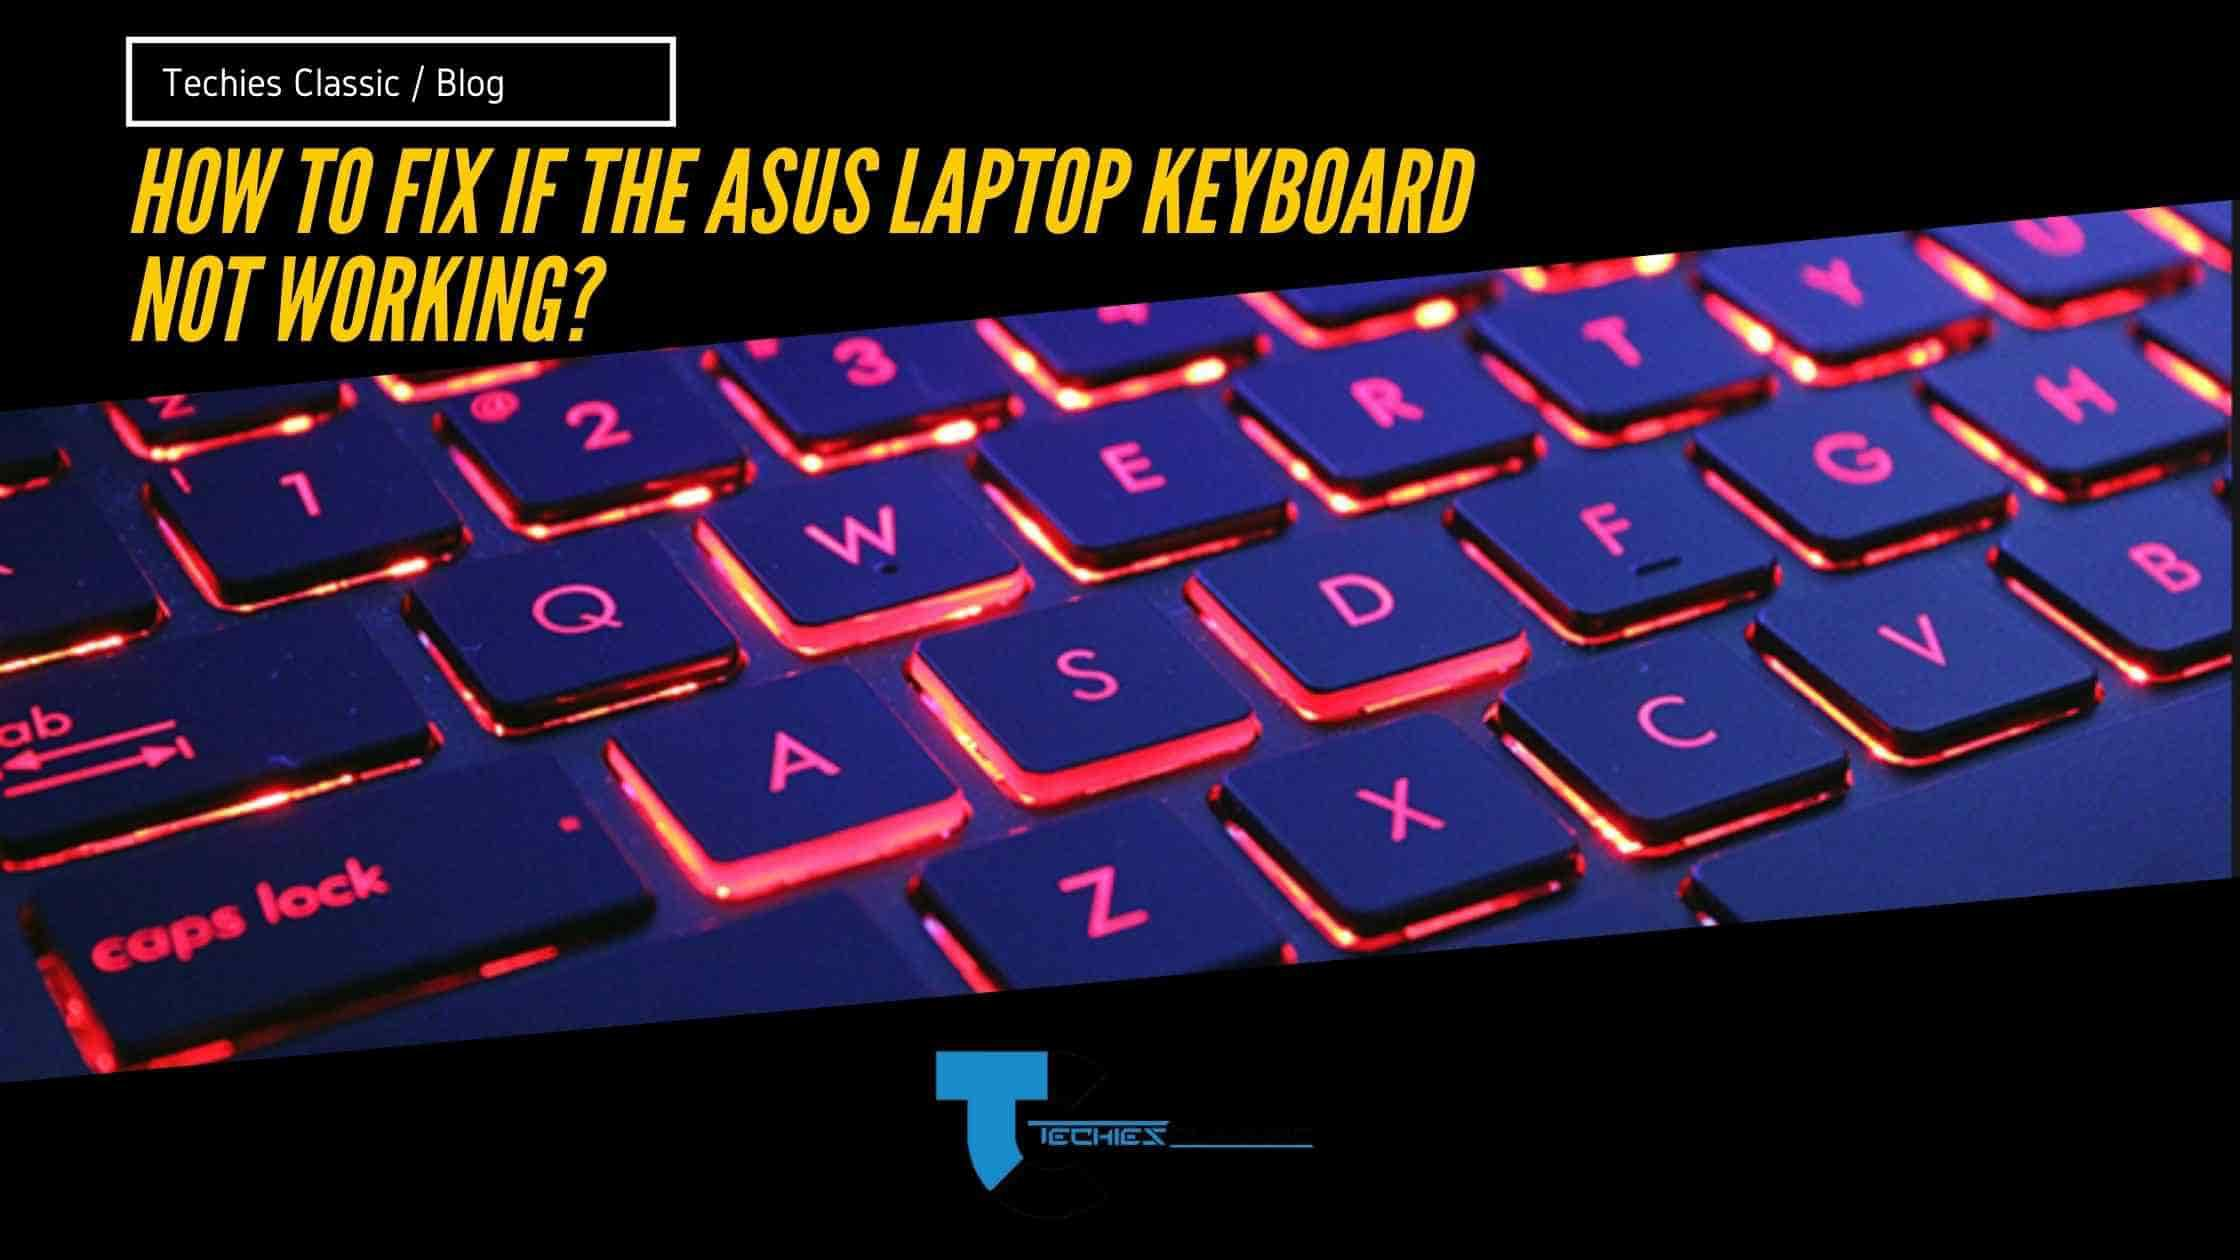 How to fix if the ASUS laptop keyboard not working?